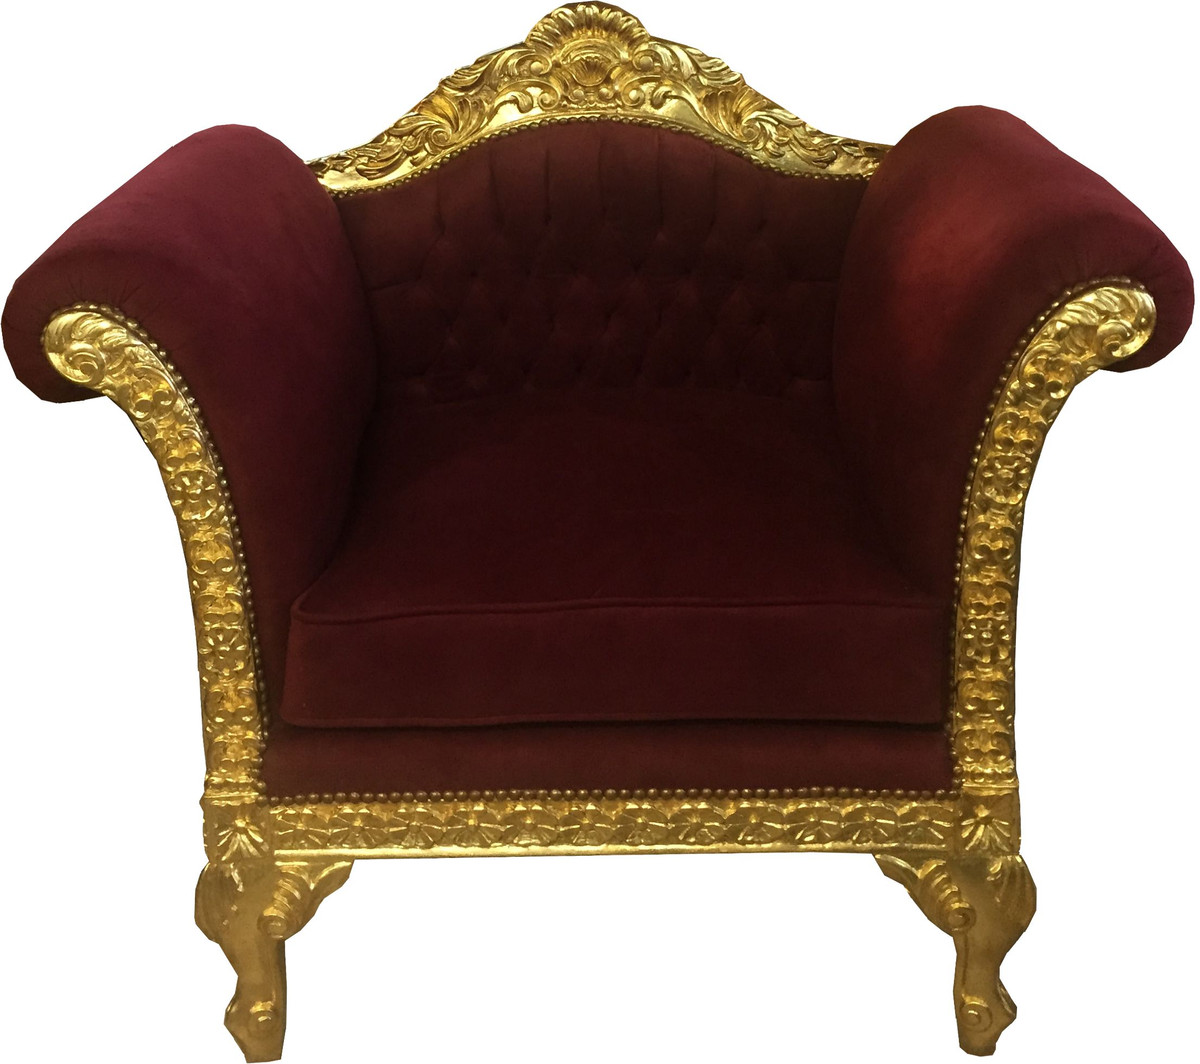 Badezimmer Garnitur Gold Luxus Barock Möbel Kollektion Bordeaux Gold Imperialistisches